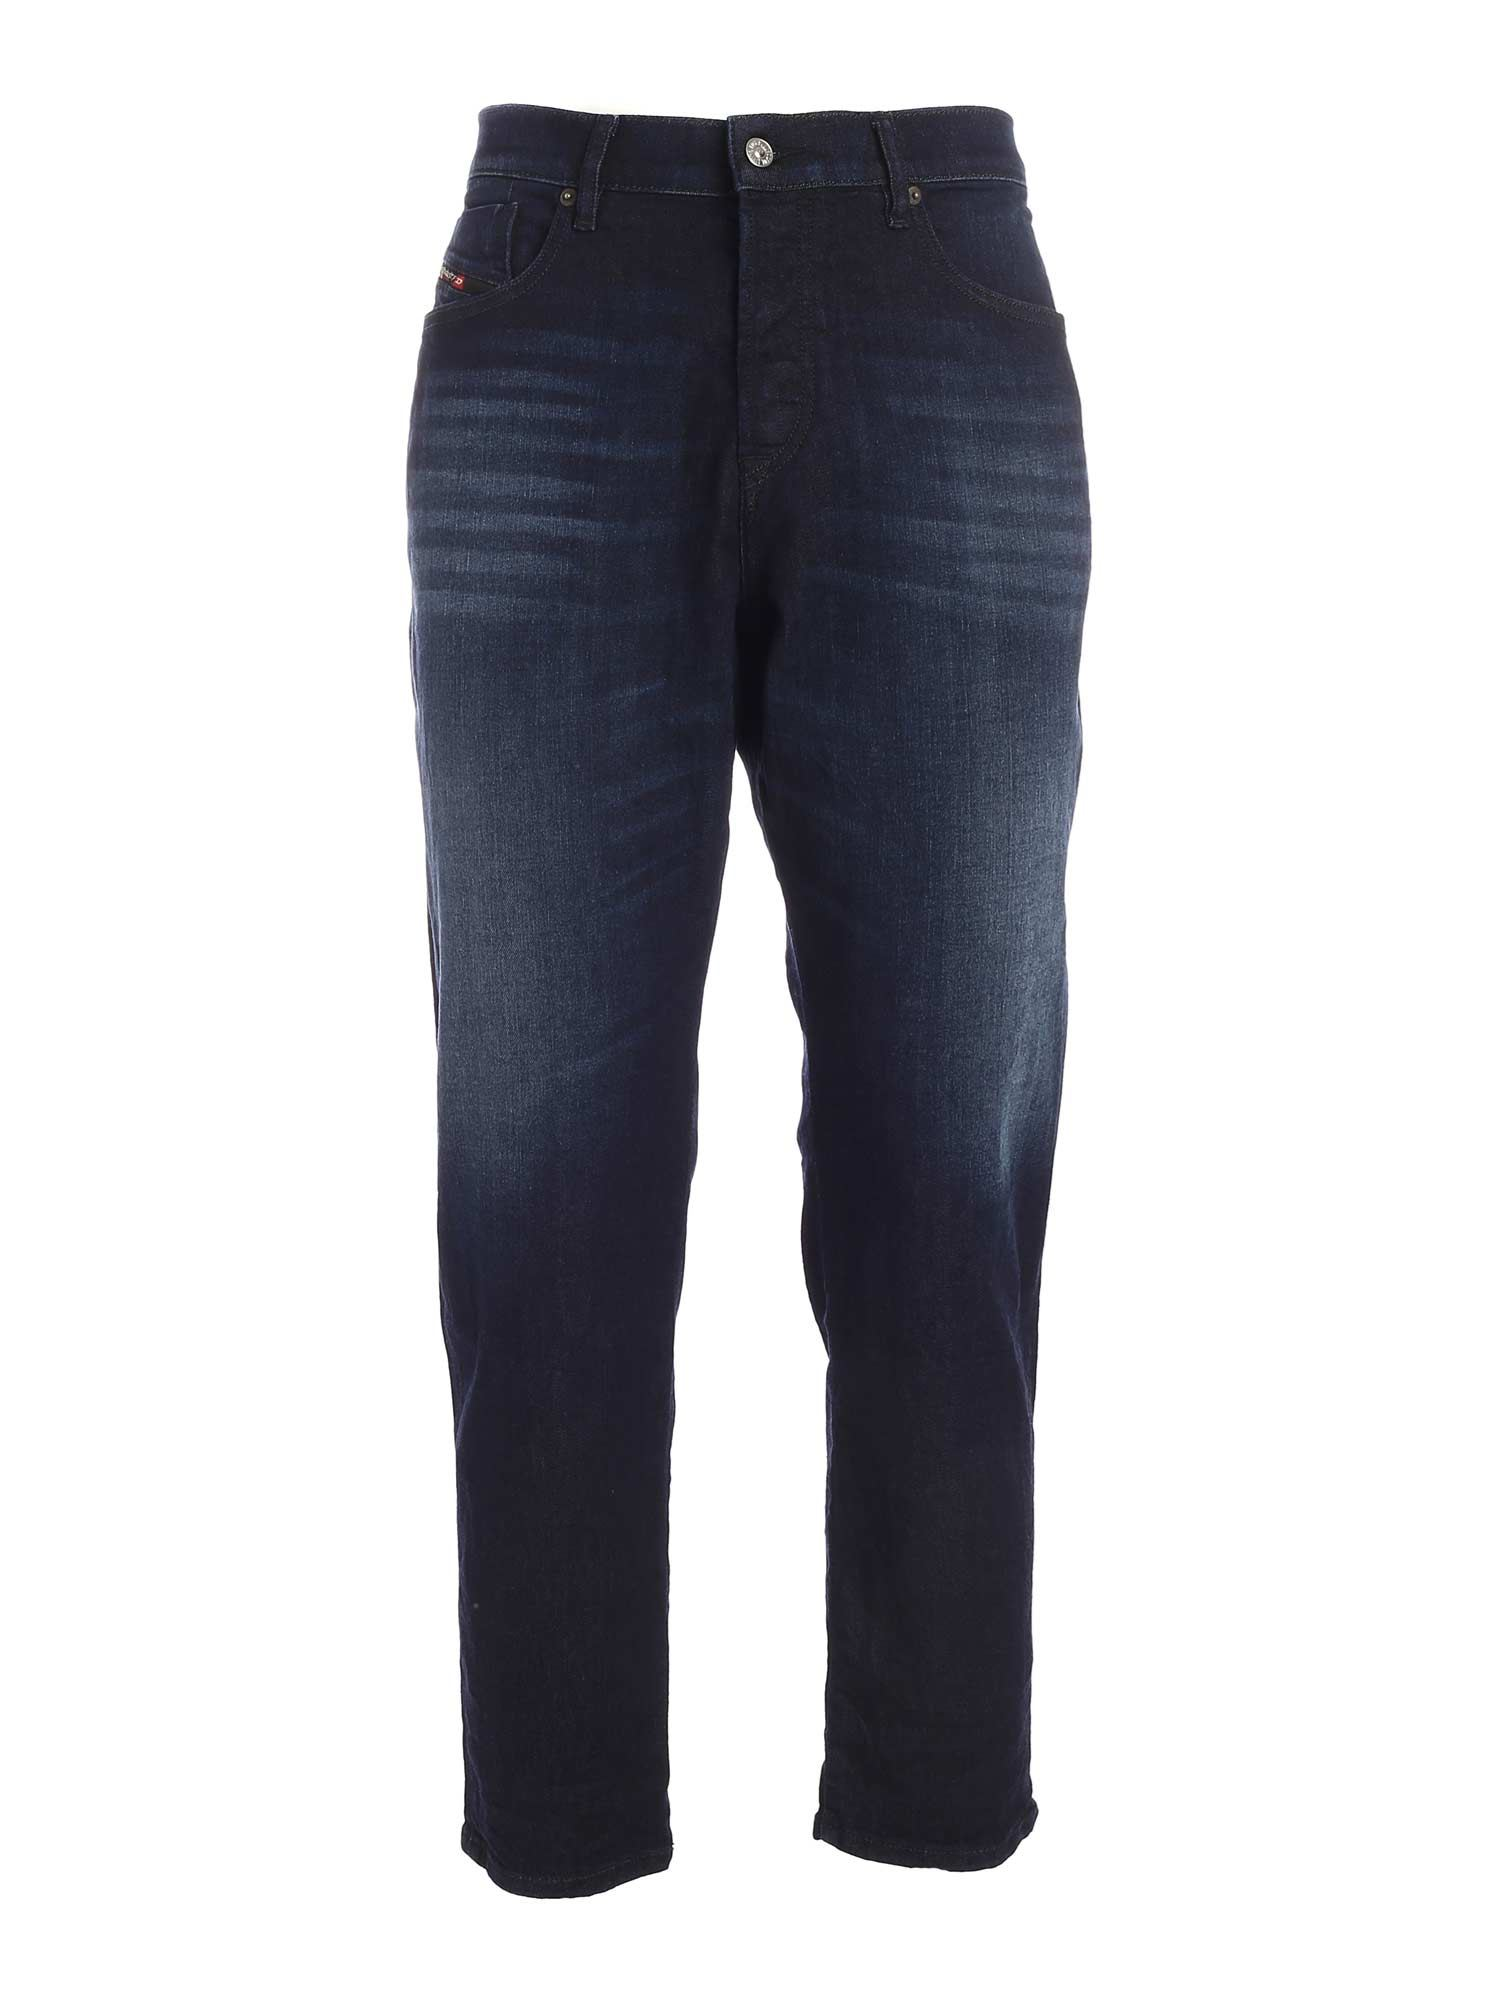 Diesel D-FINING JEANS IN DARK BLUE